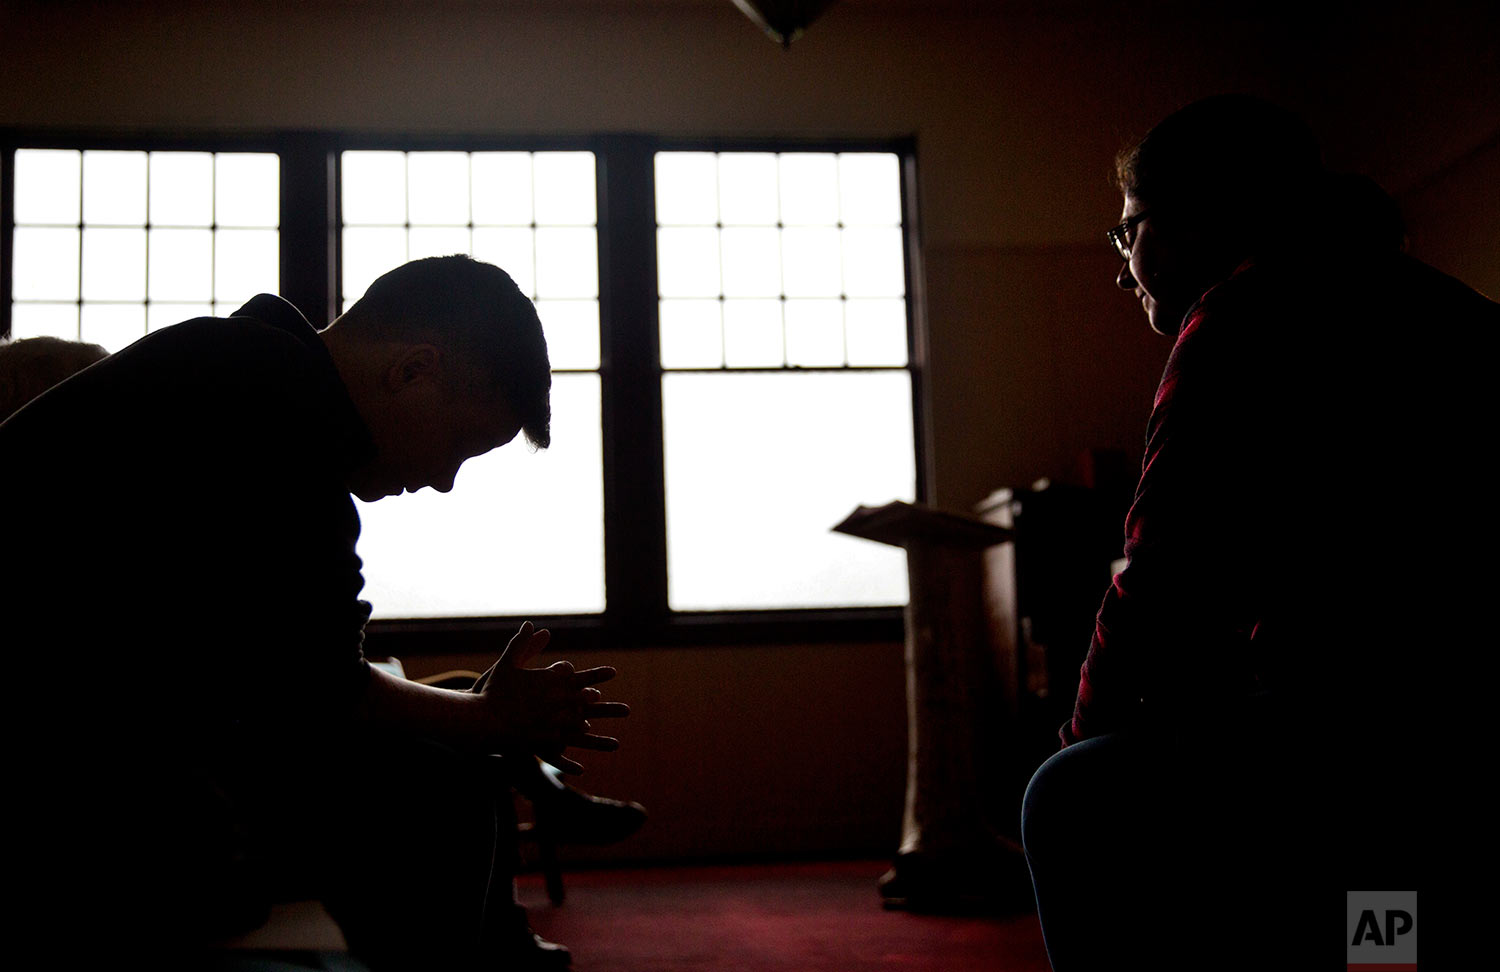 """Aaron Scott, left, prays during a service conducted by Rev. Sarah Monroe, right, at Chaplains on the Harbor church in Westport, Wash., Thursday, June 15, 2017. """"I don't think our politicians know how high the stakes are here, and after so many years have gone by with our situation still as devastated as it is, I don't know if they care,"""" Monroe says. """"I'm not sure how much worse it can get, and at the same time I'm afraid to see how much worse it can get."""" (AP Photo/David Goldman)"""